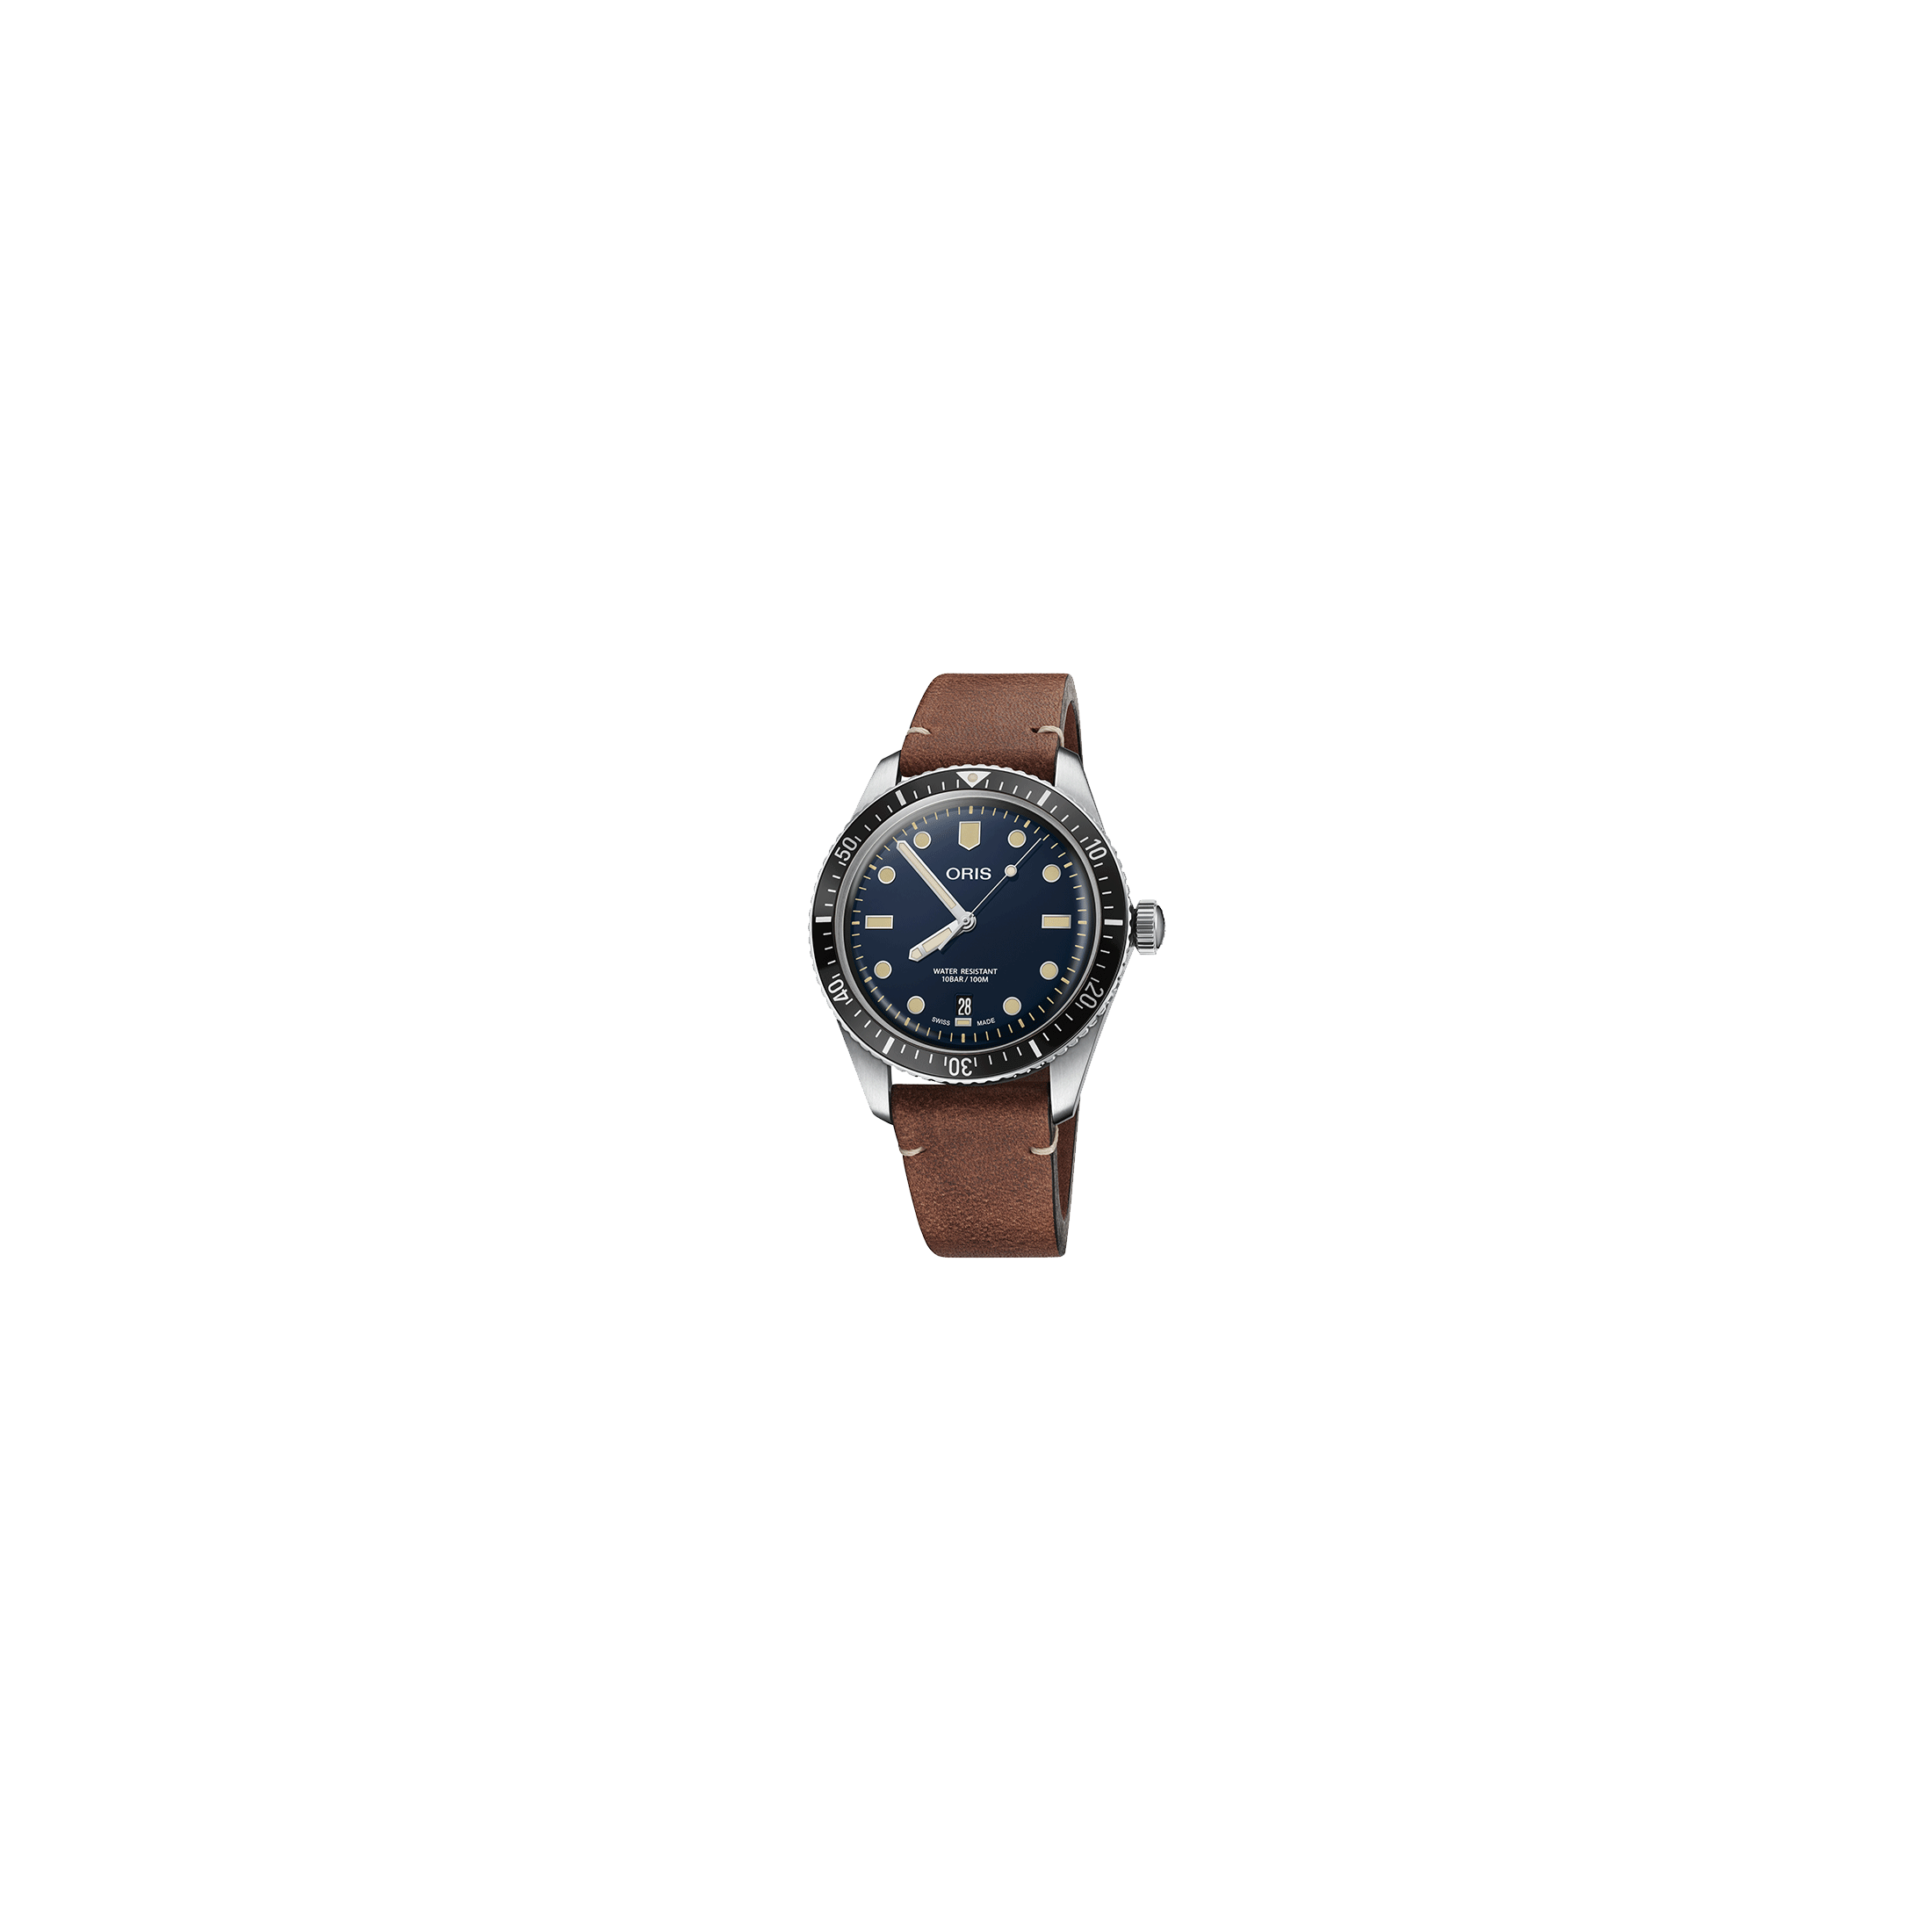 Montre Oris Plongée Divers Sixty-Five automatique cadran bleu bracelet cuir marron 40 mm